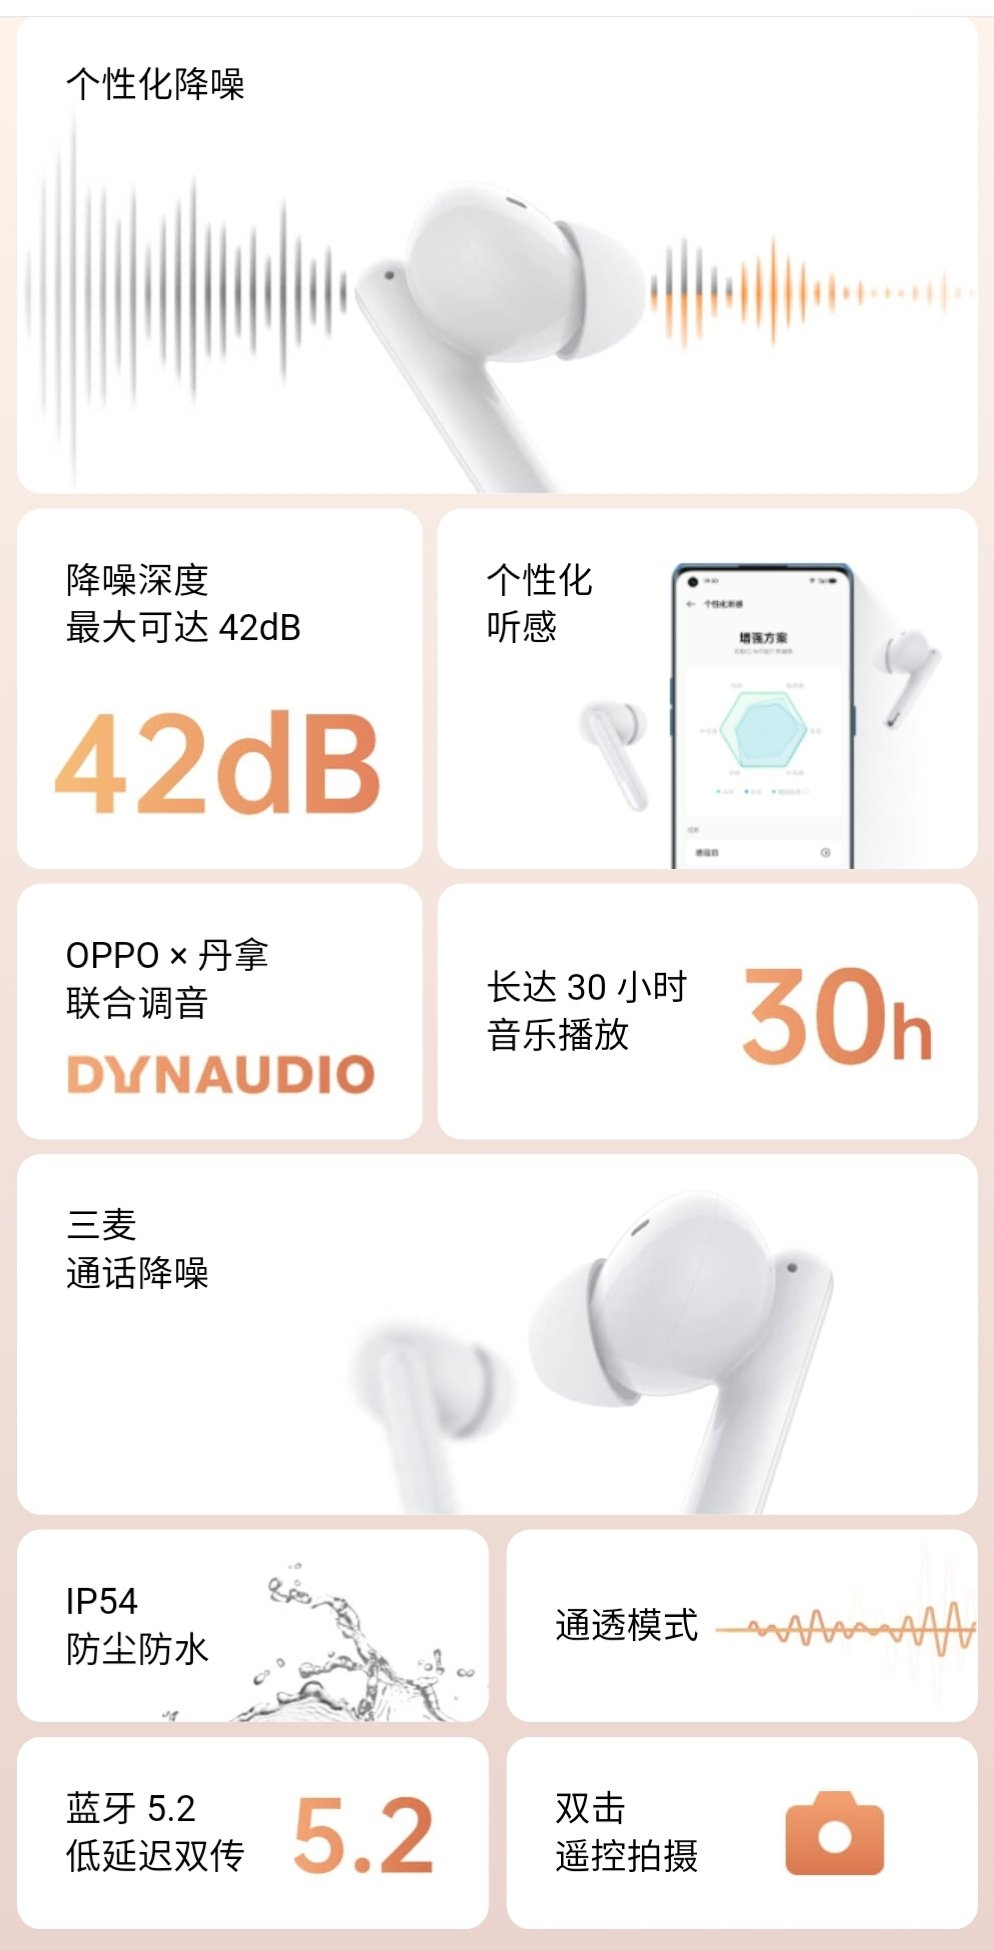 Oppo Enco Free 2 TWS Earbuds – Complete Details On New Design, ANC & DYNAUDIO Specification